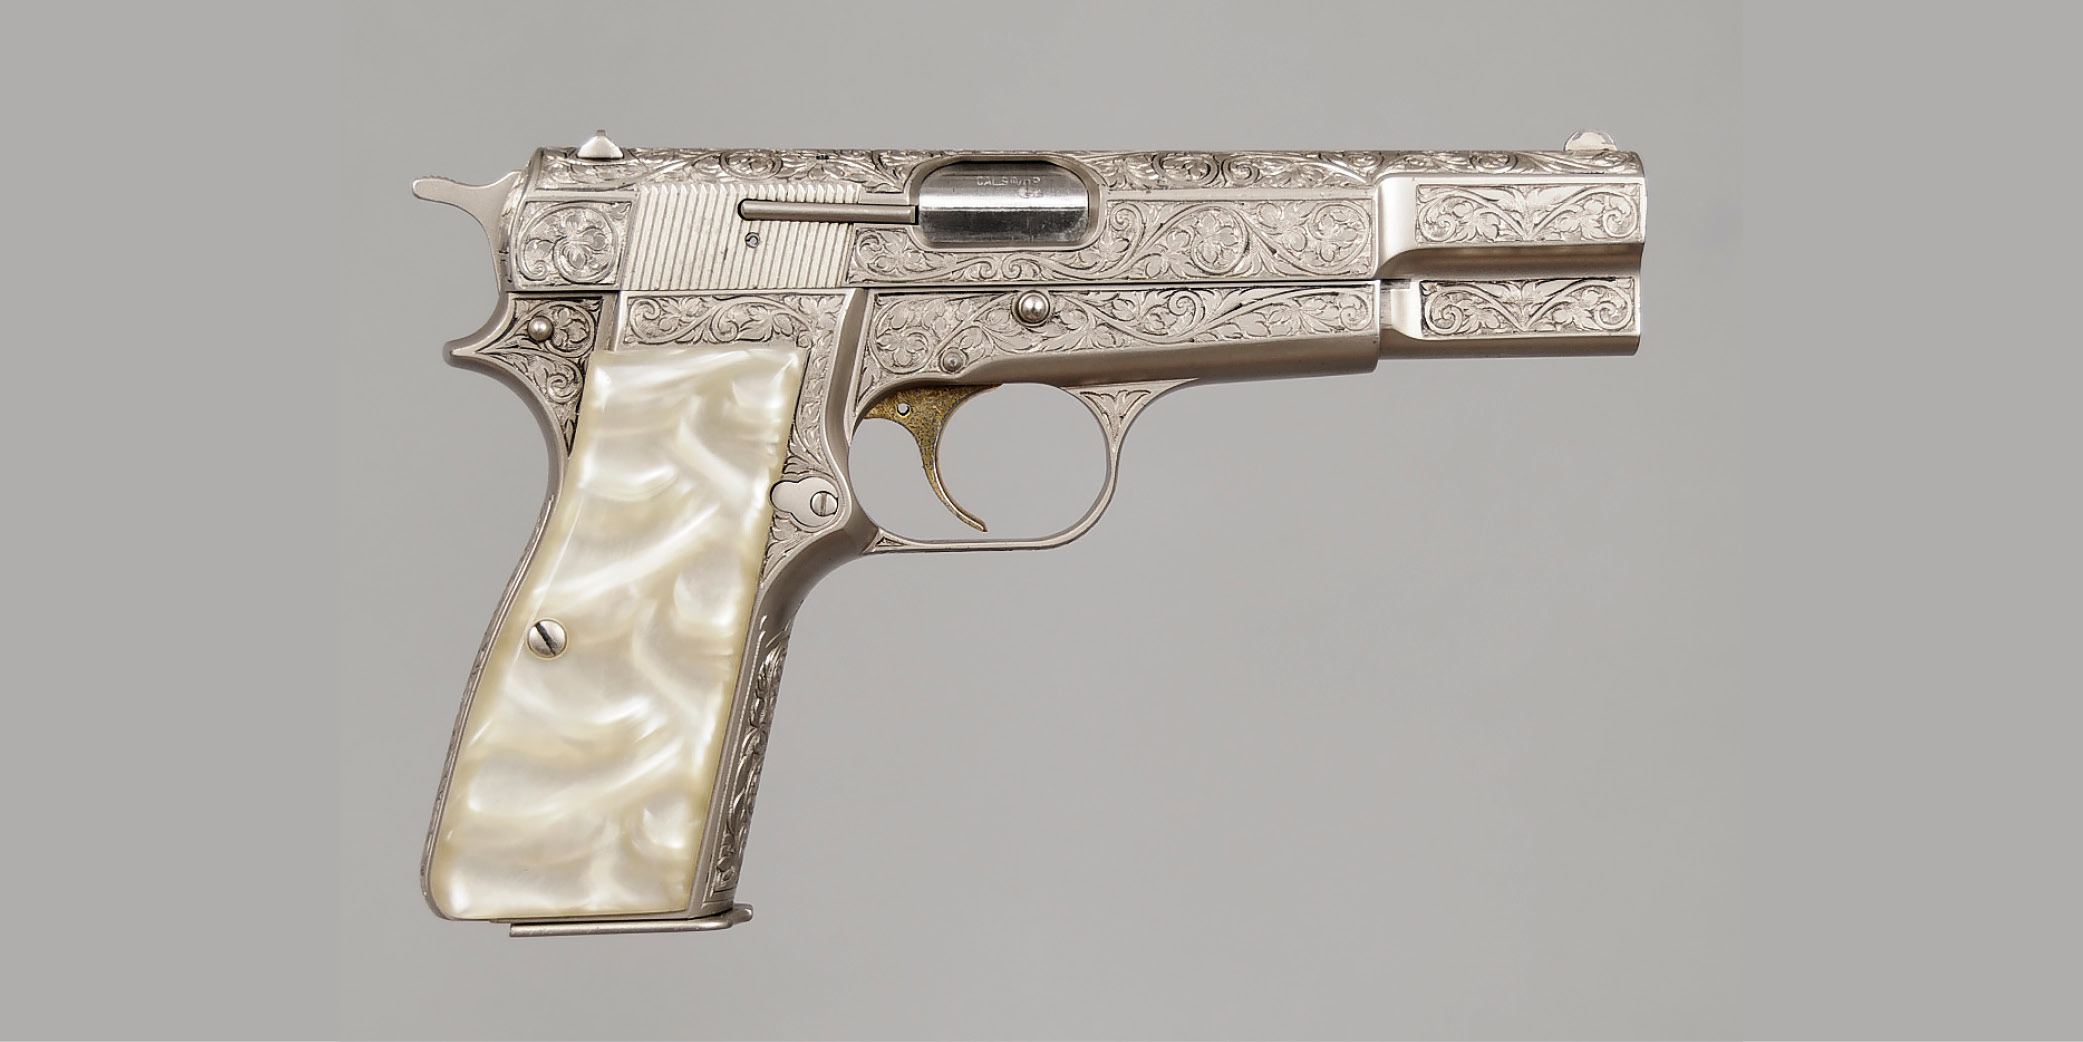 Browning Renaissance Engraved High Power Pistol  - Sold for $4,080